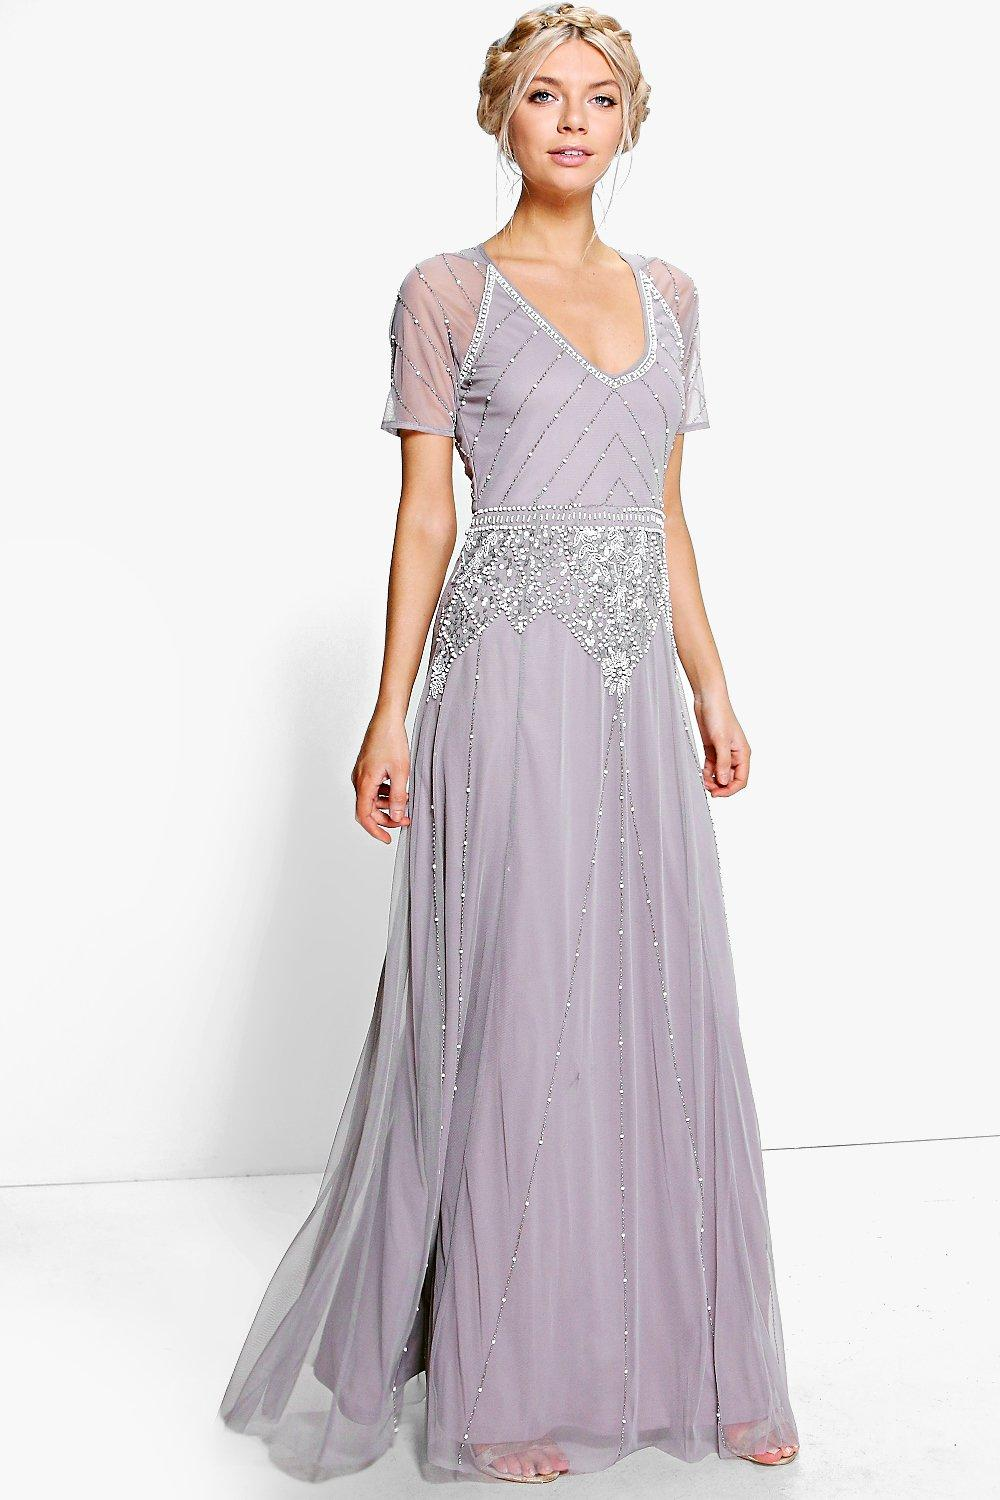 What Did Women Wear in the 1930s? 1930s Fashion Guide Womens Boutique Beaded Cap Sleeve Maxi Dress - grey - 16 $58.00 AT vintagedancer.com